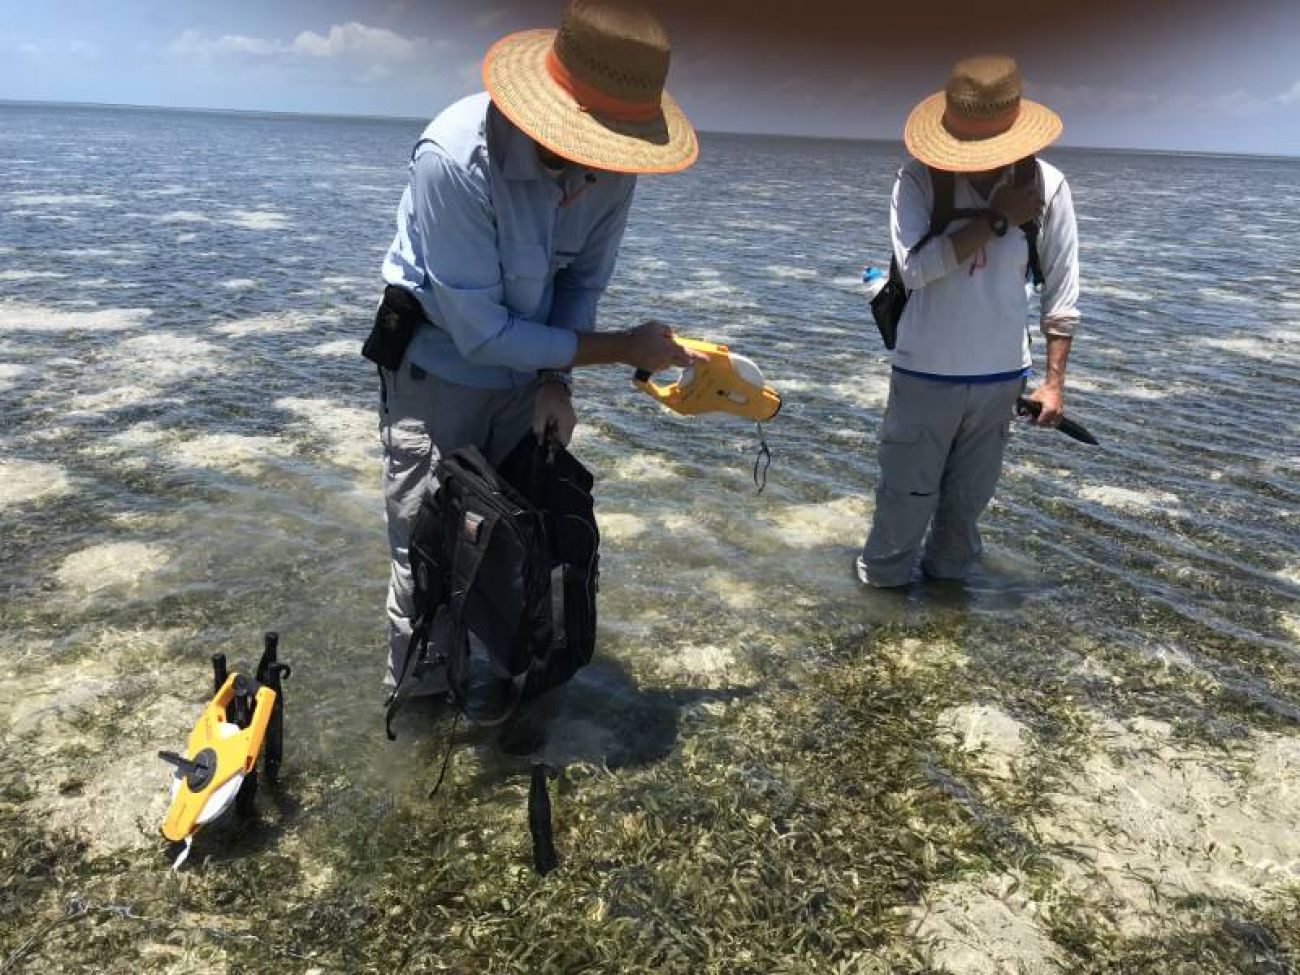 Marine Monitoring Program seagrass - image credit Carol Honchin